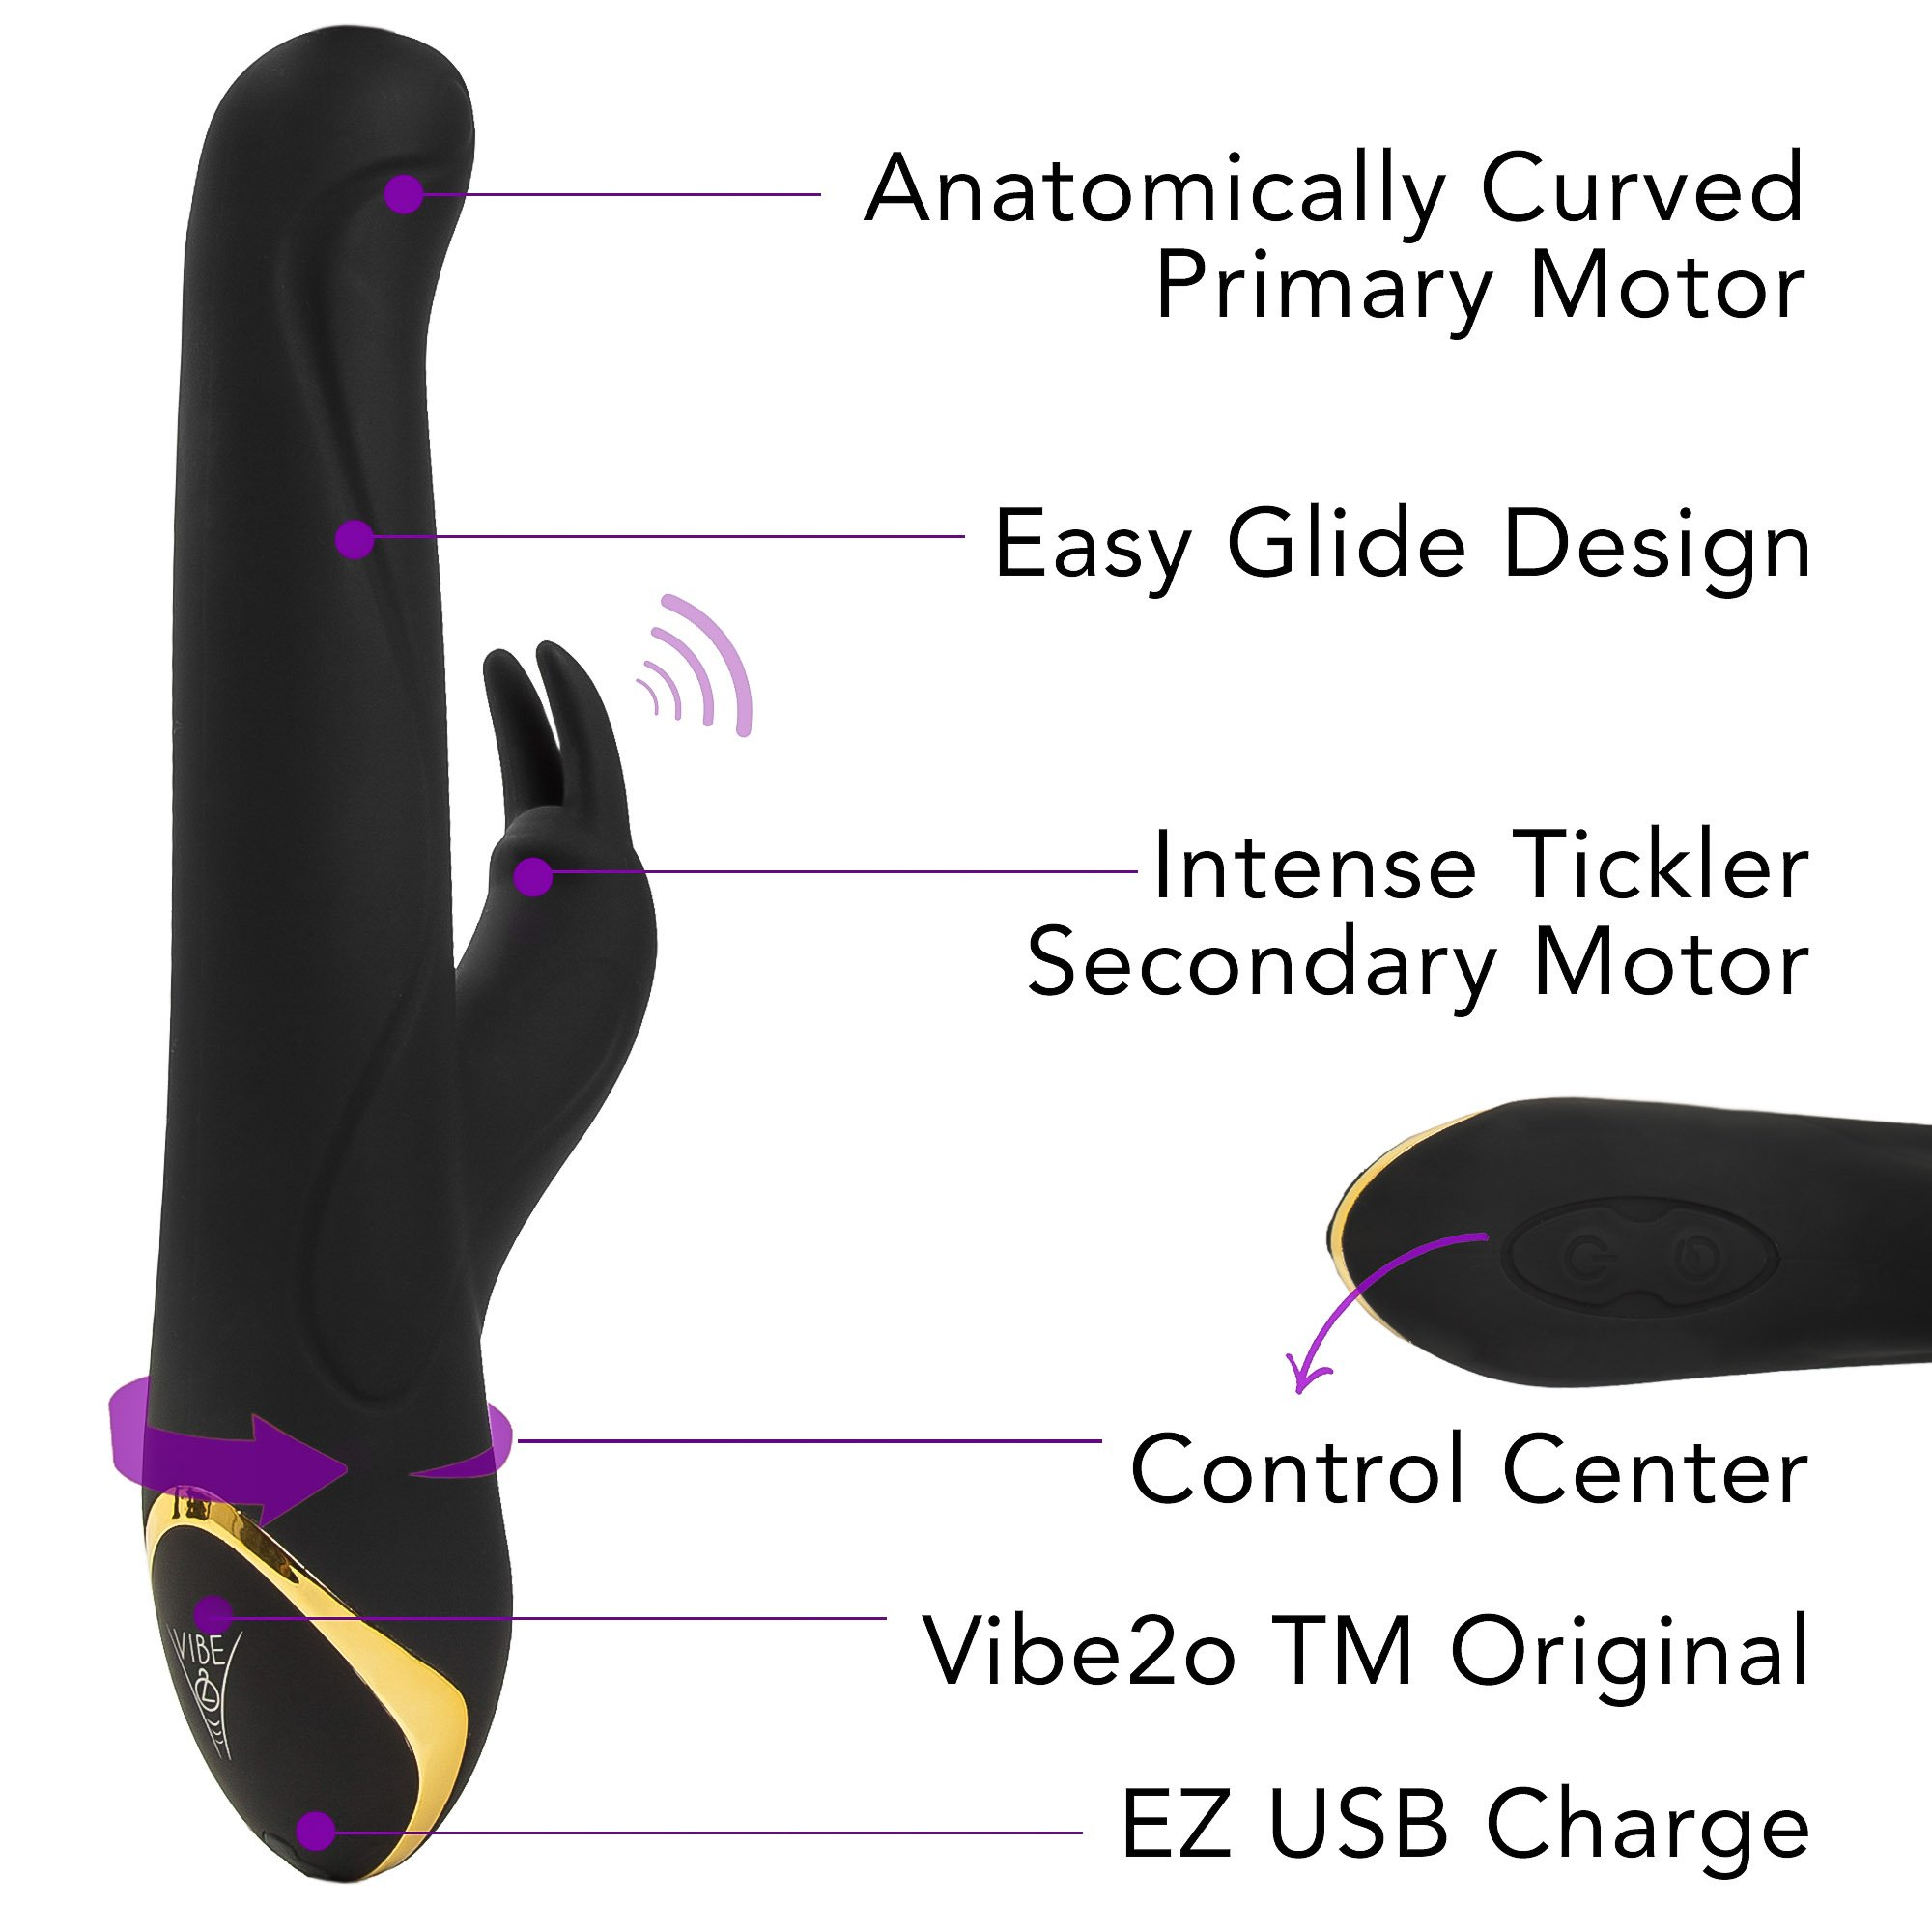 Diabella Dual Motor G Spot & Clitoris Vibrator w/ Anal Plug Adult Toy Play Set. 10 Pulsating Modes, Waterproof, Rechargeable, Medical Grade Silicone, Contoured, Exclusive 2017 Vibe2o (Large 5\